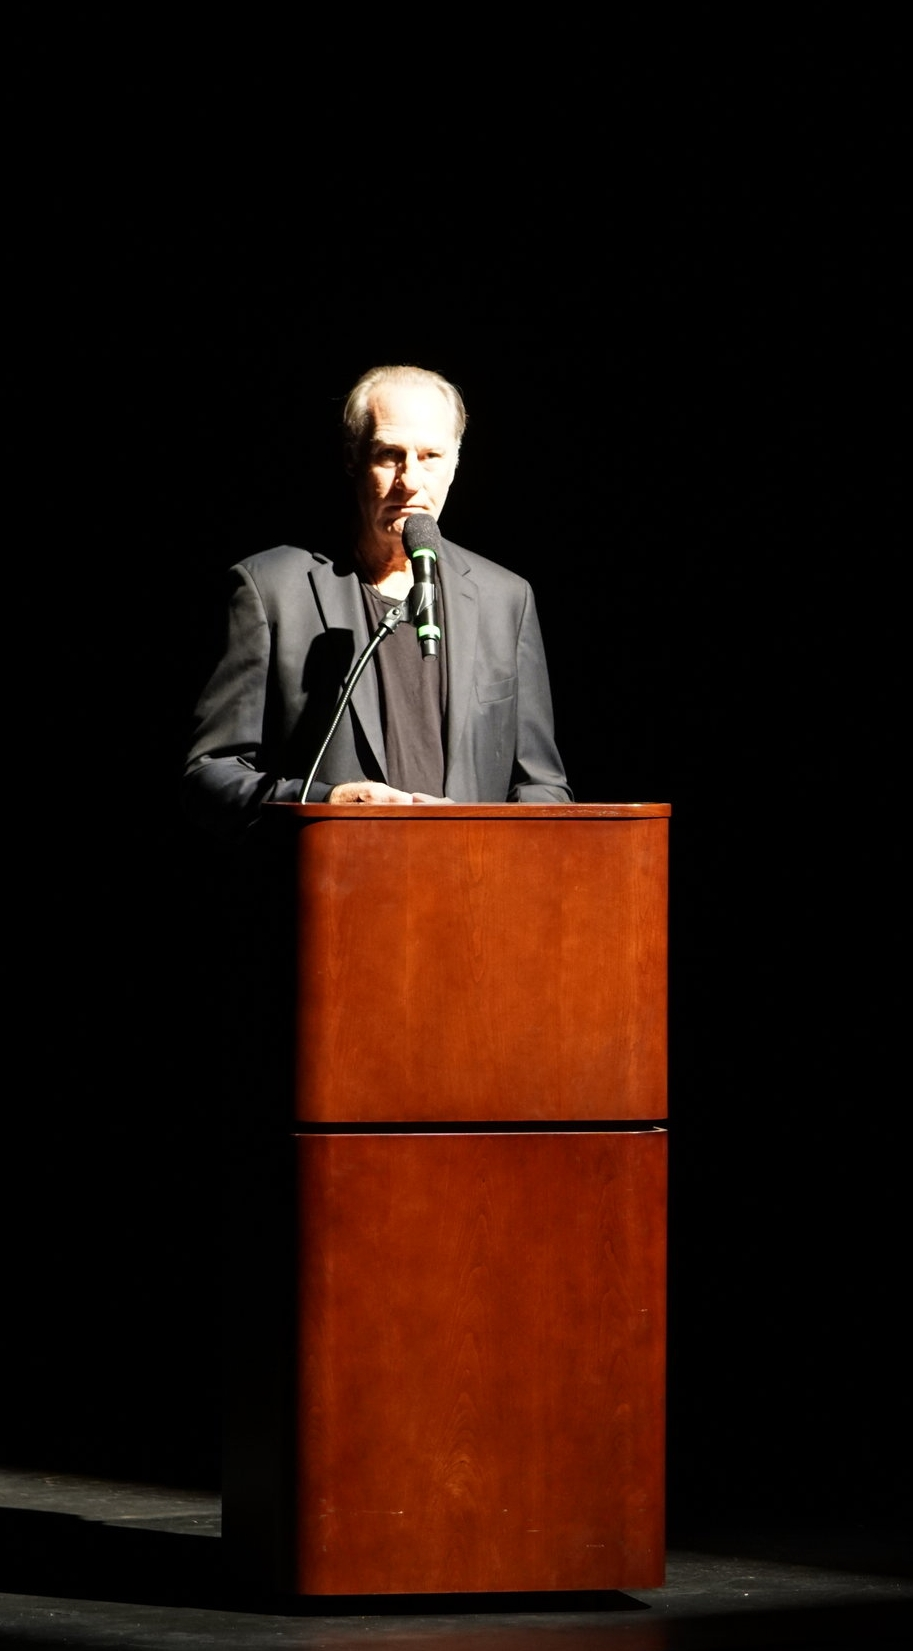 Emmy Award Winning Actor Craig T. Nelson reads The Firefighters Prayer